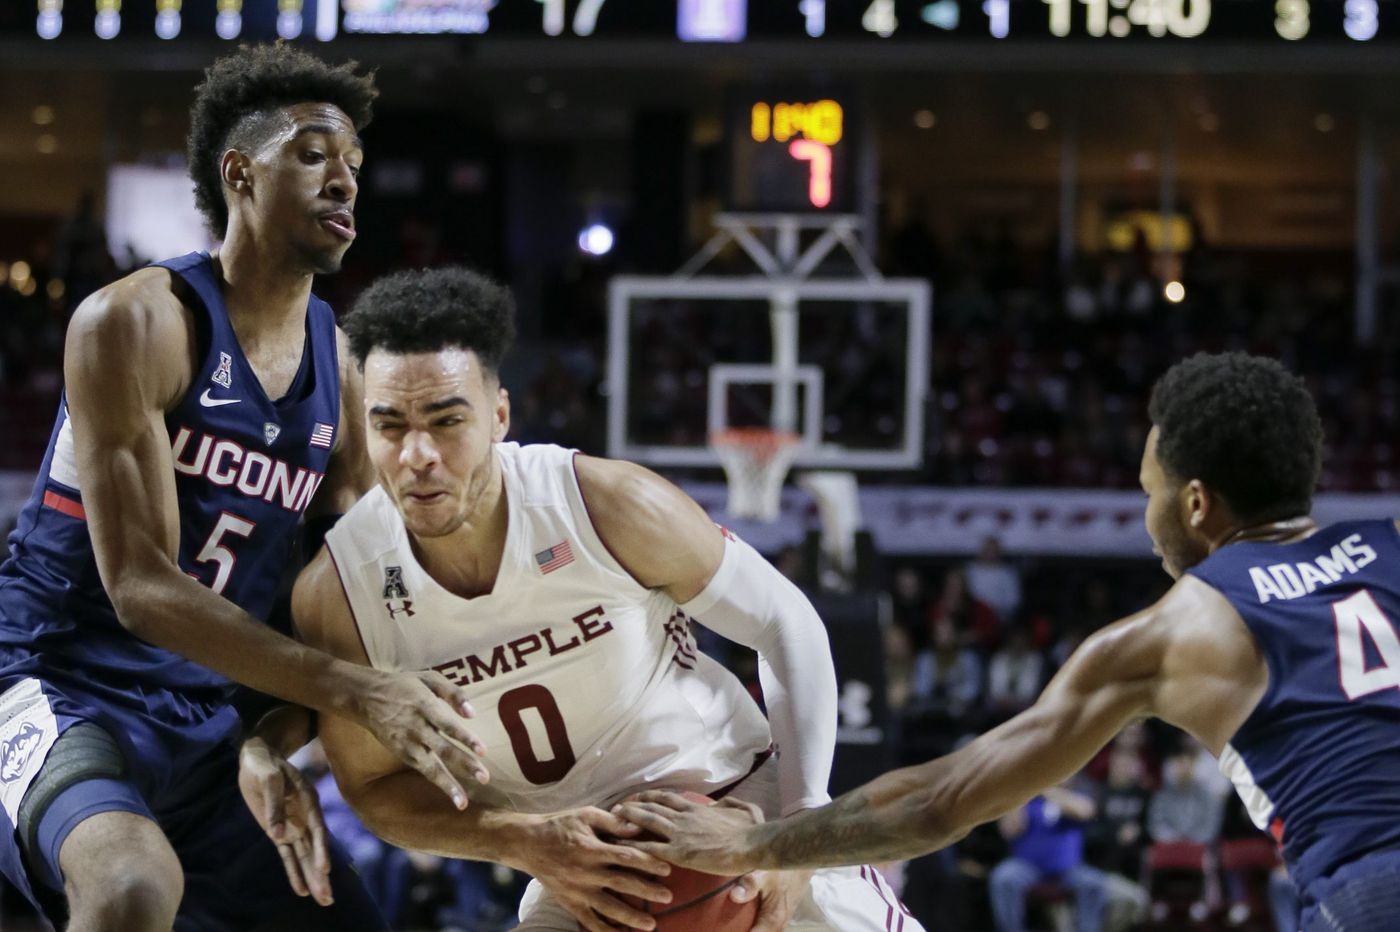 Temple's Obi Enechionyia to play for Pistons in NBA summer league